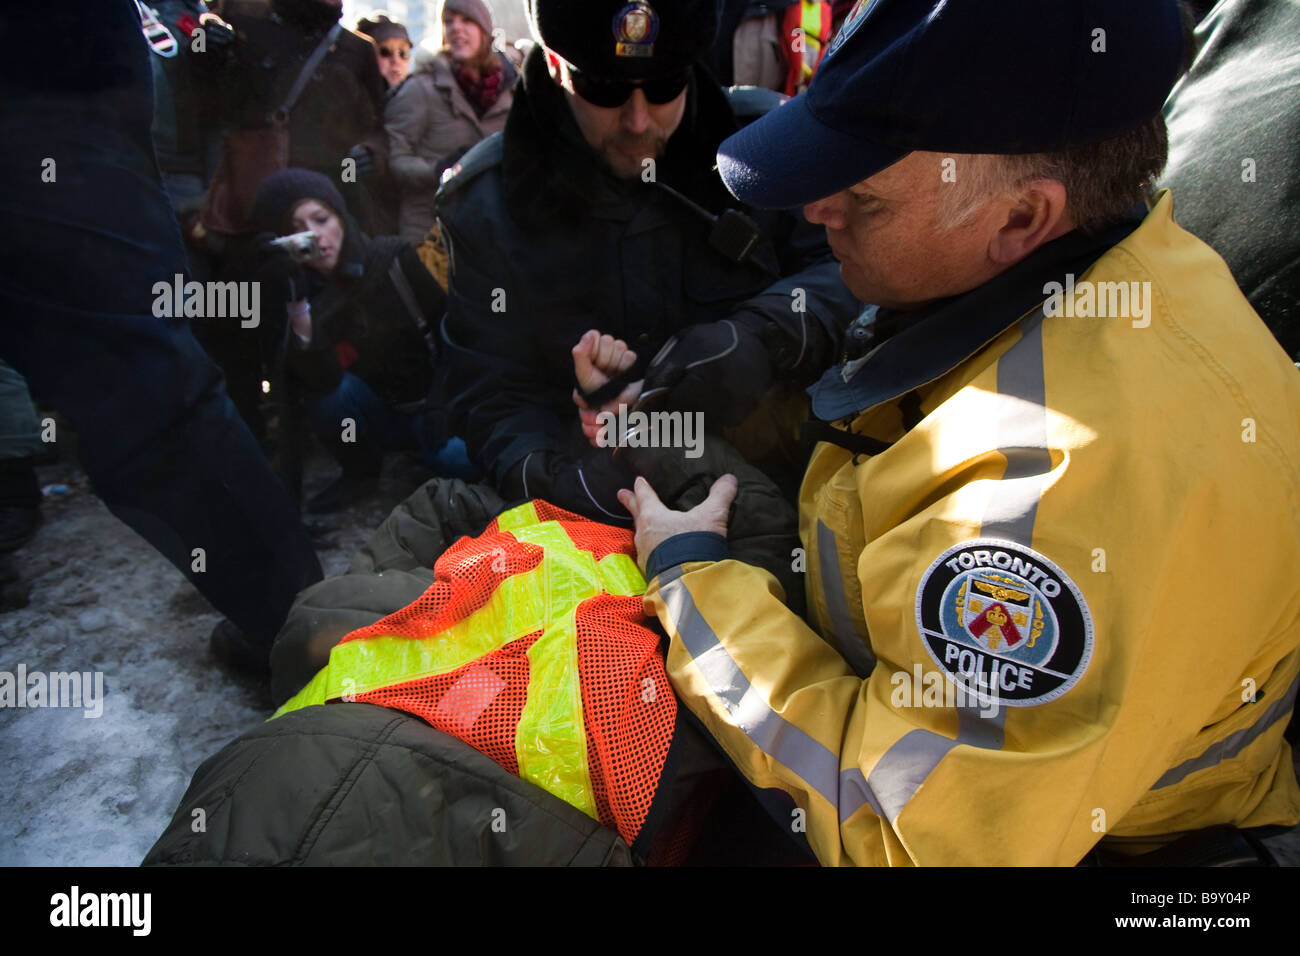 Toronto police arrests a union protester during a CUPE 3903 rally